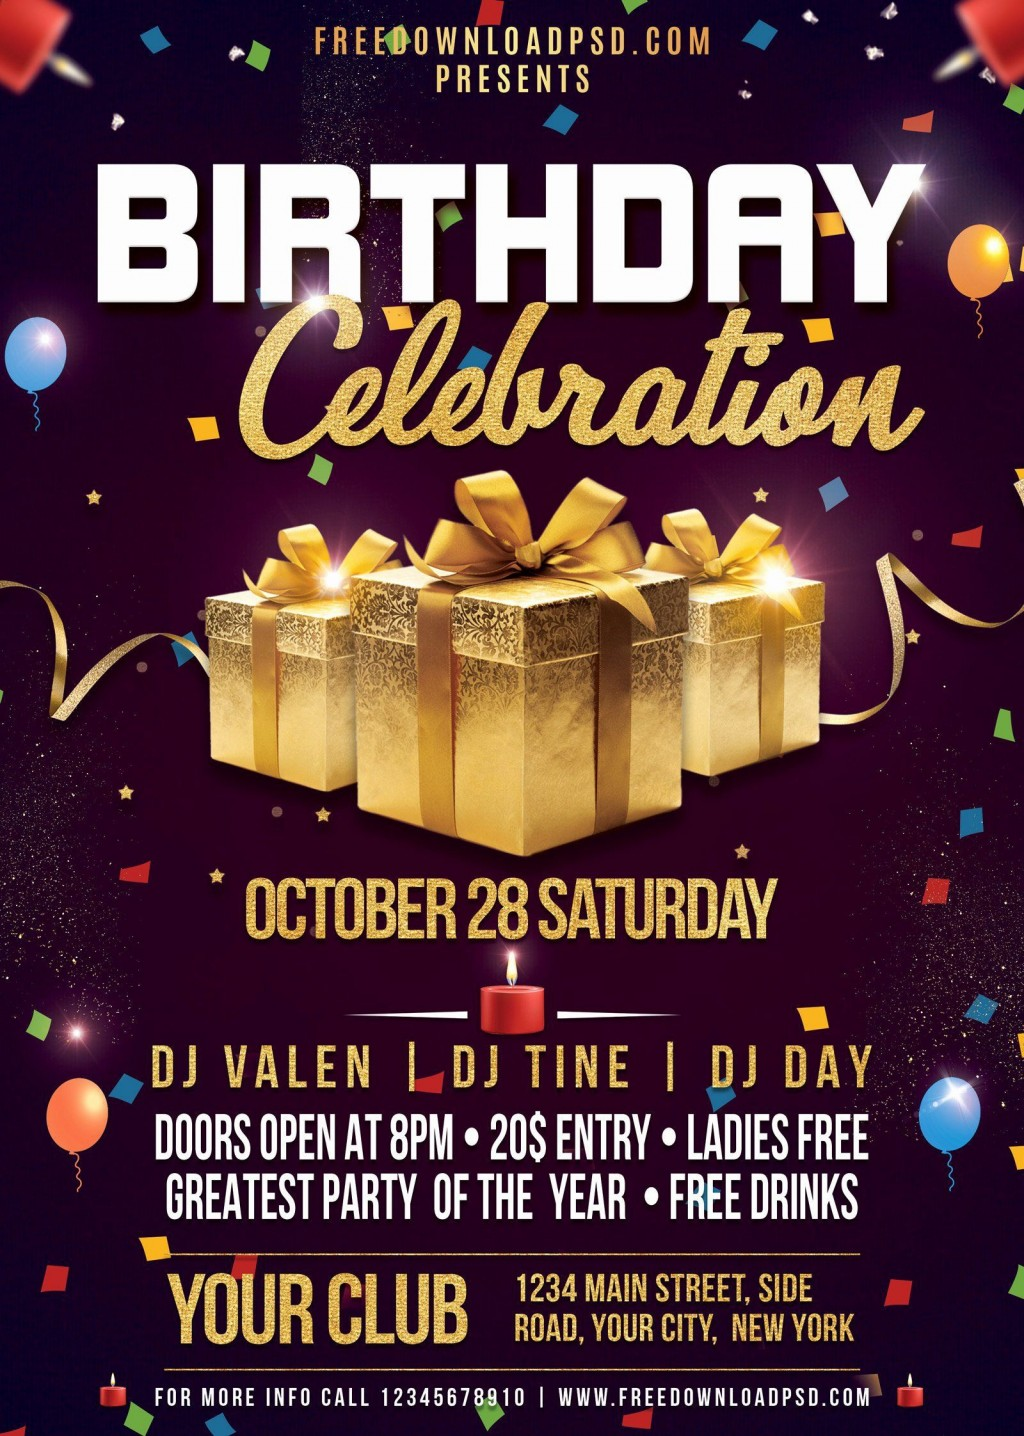 000 Frightening Birthday Flyer Template Psd Free Download Photo Large